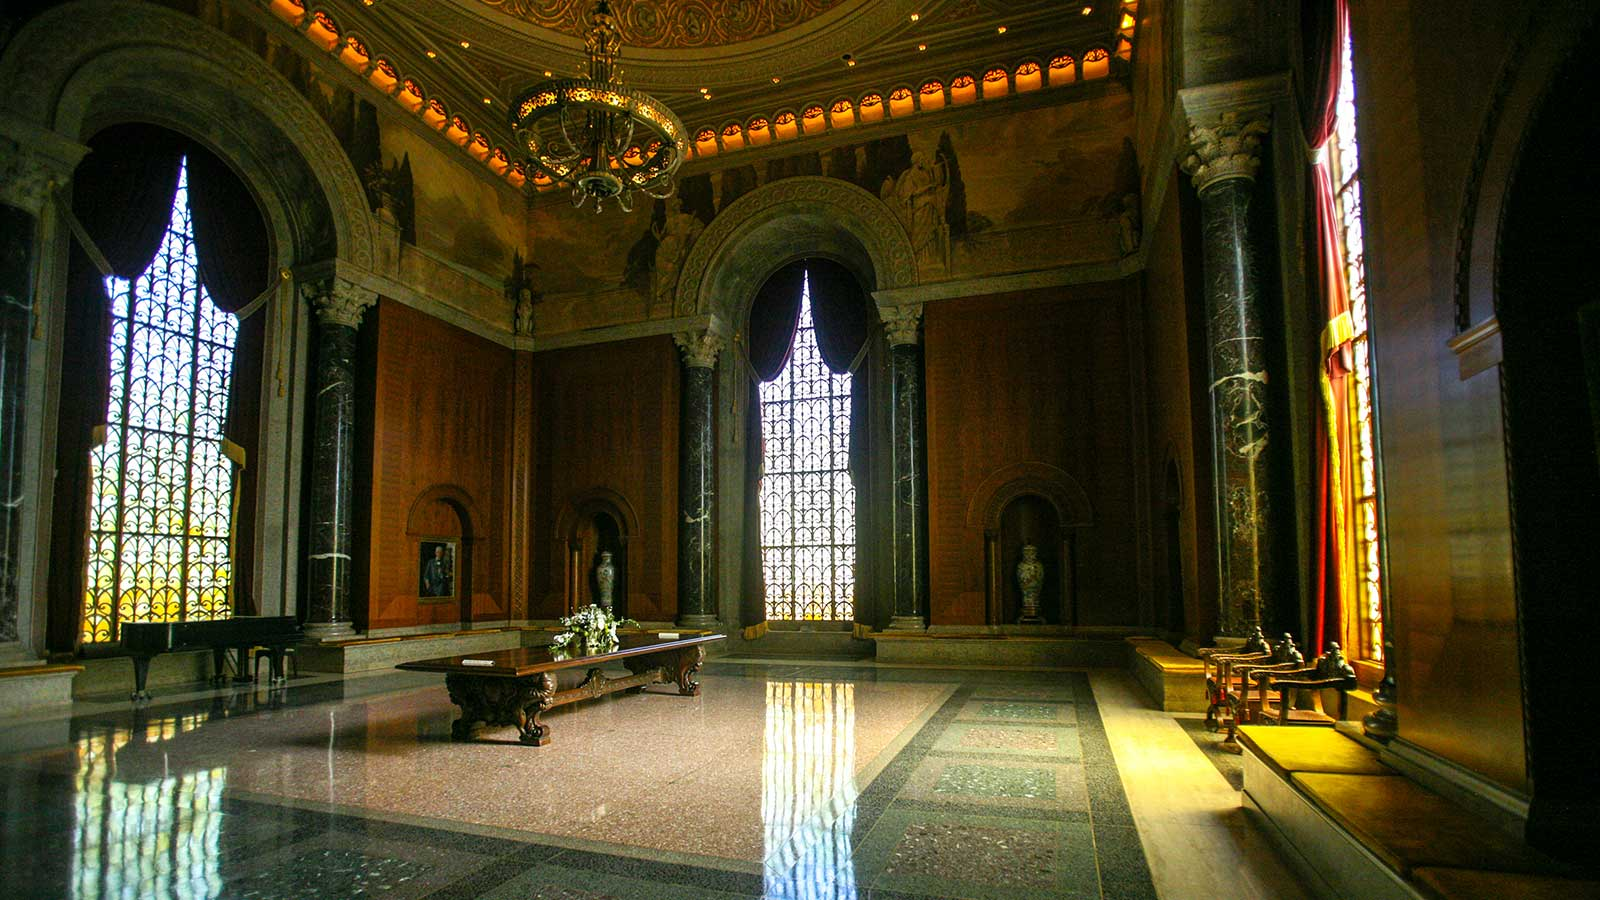 The McLean Foyer of Meditation within the Armstrong Browning Library takes its inspiration from Leighton House in London.